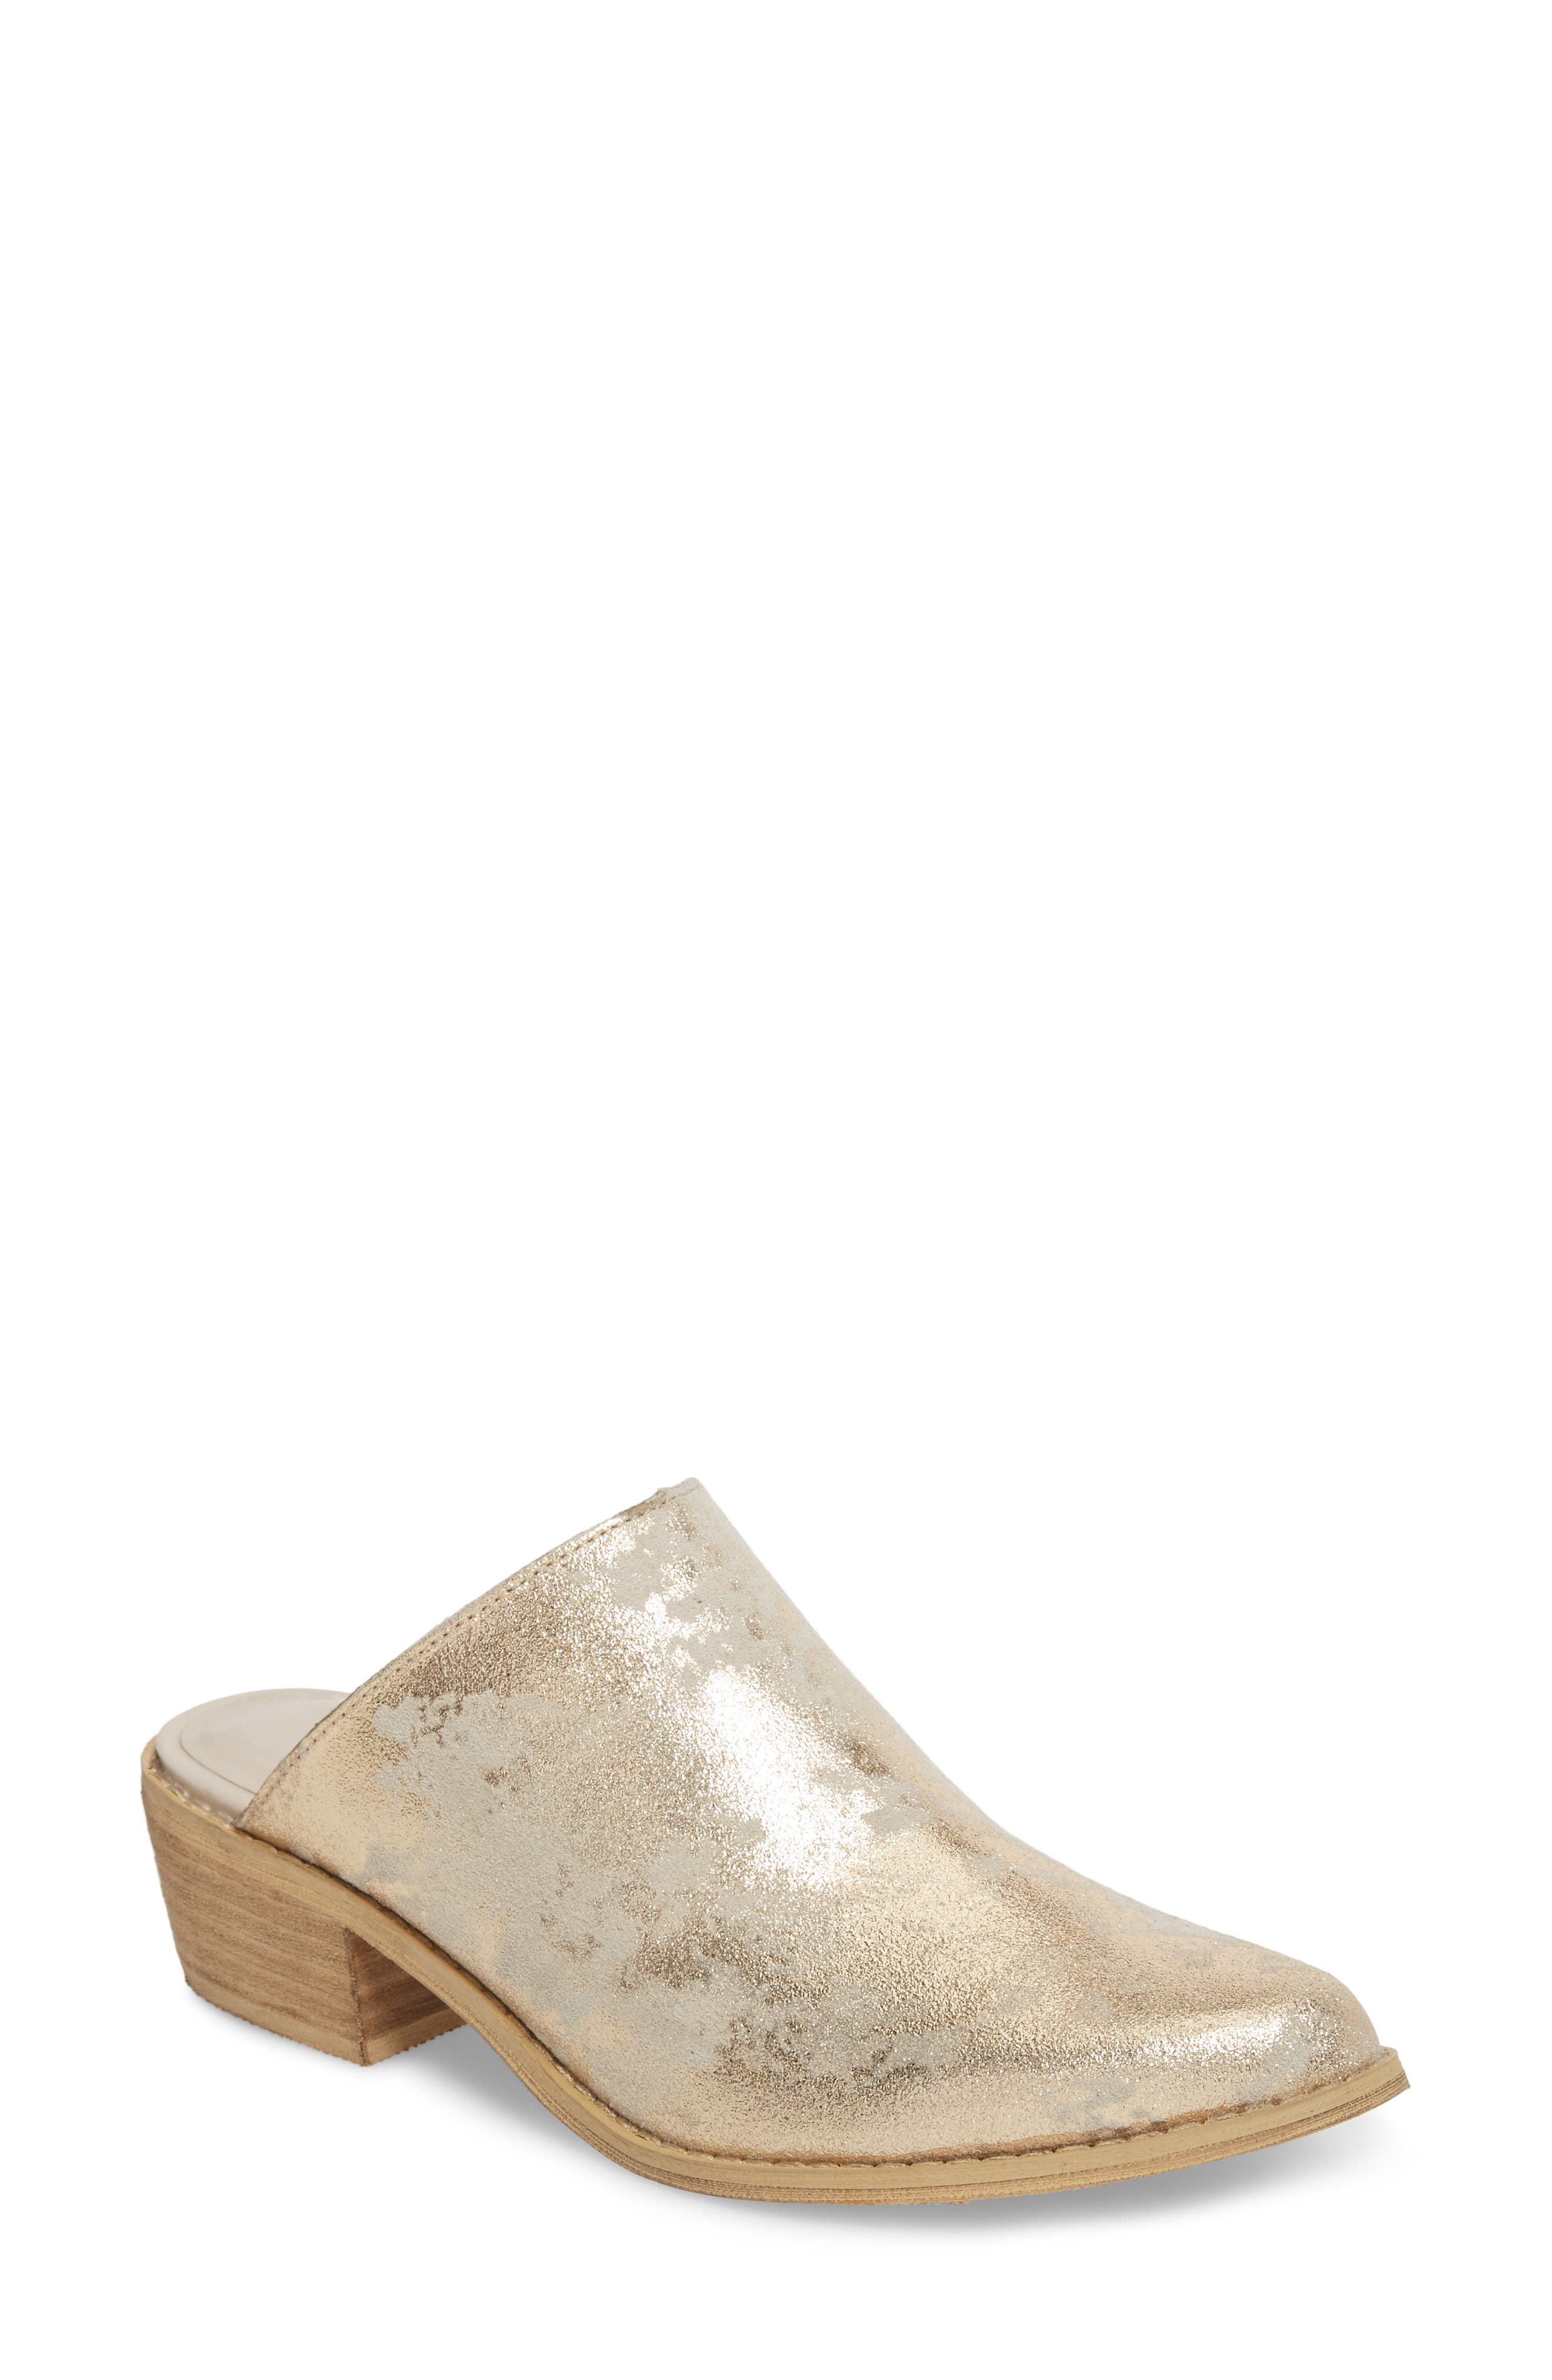 Moonstruck Mule,                             Main thumbnail 1, color,                             LIGHT GOLD SUEDE LEATHER